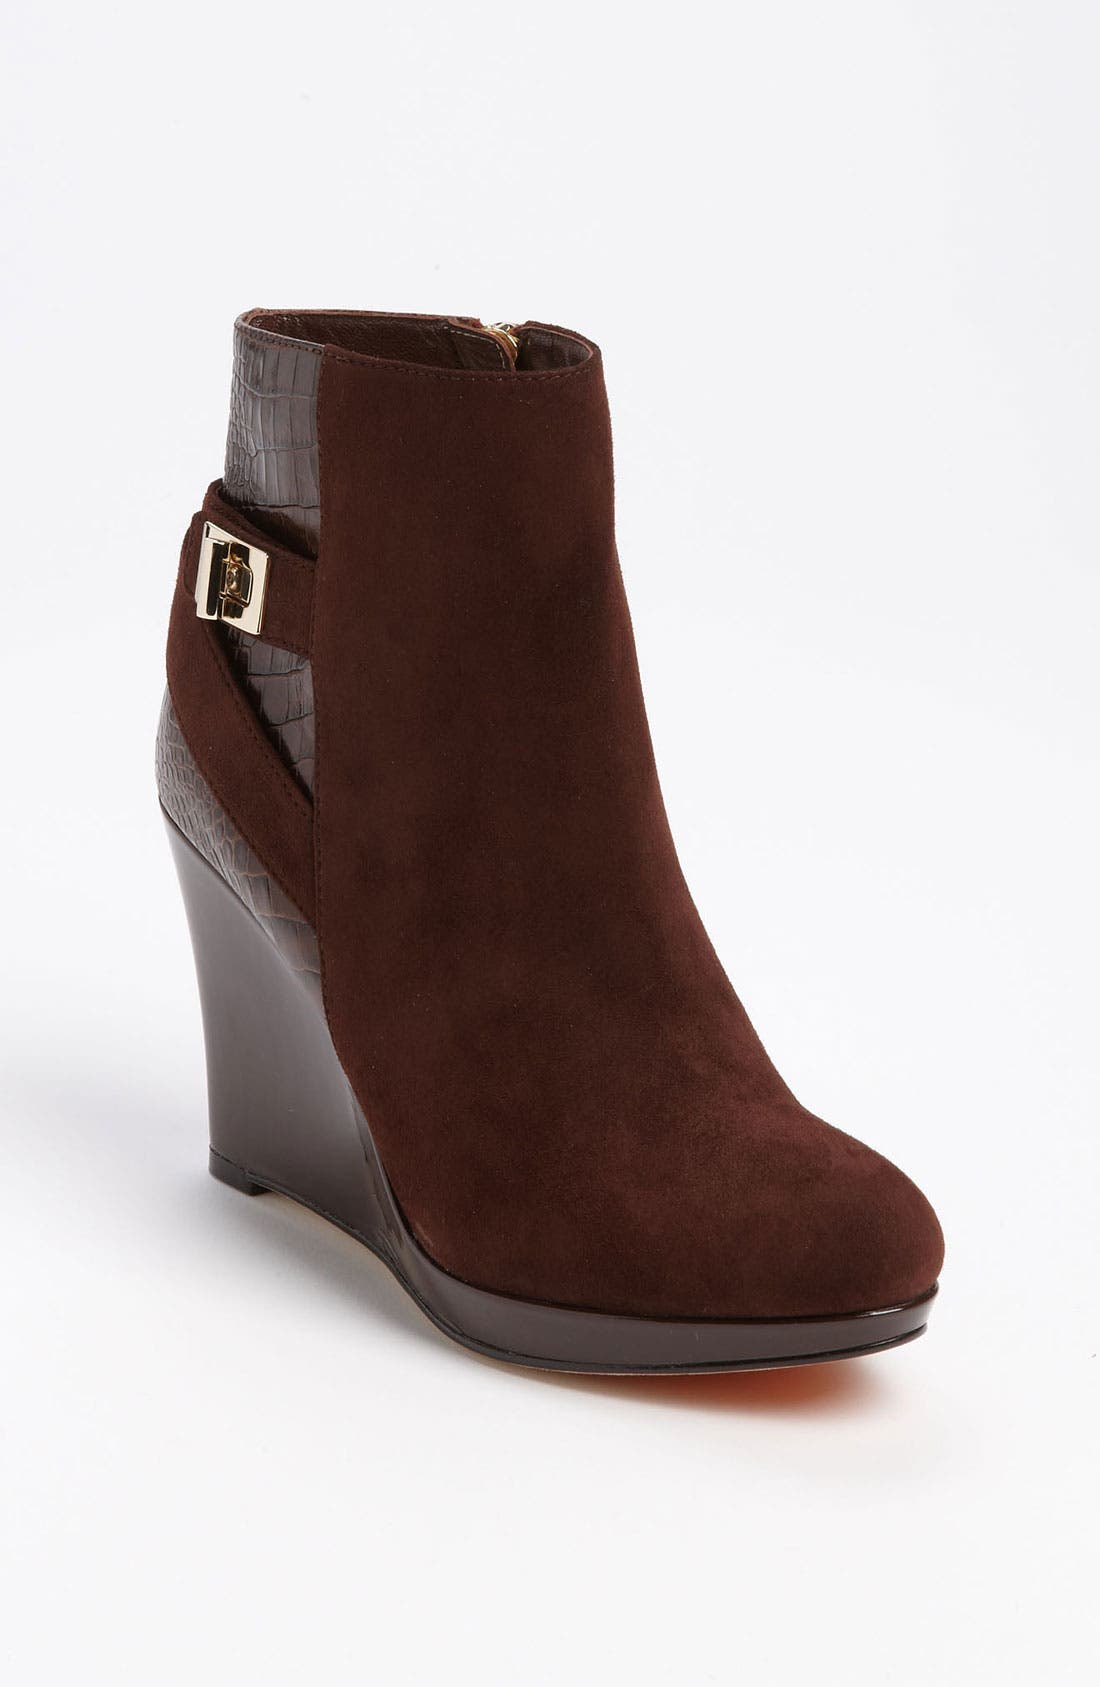 Main Image - Cole Haan 'Martina' Wedge Ankle Boot